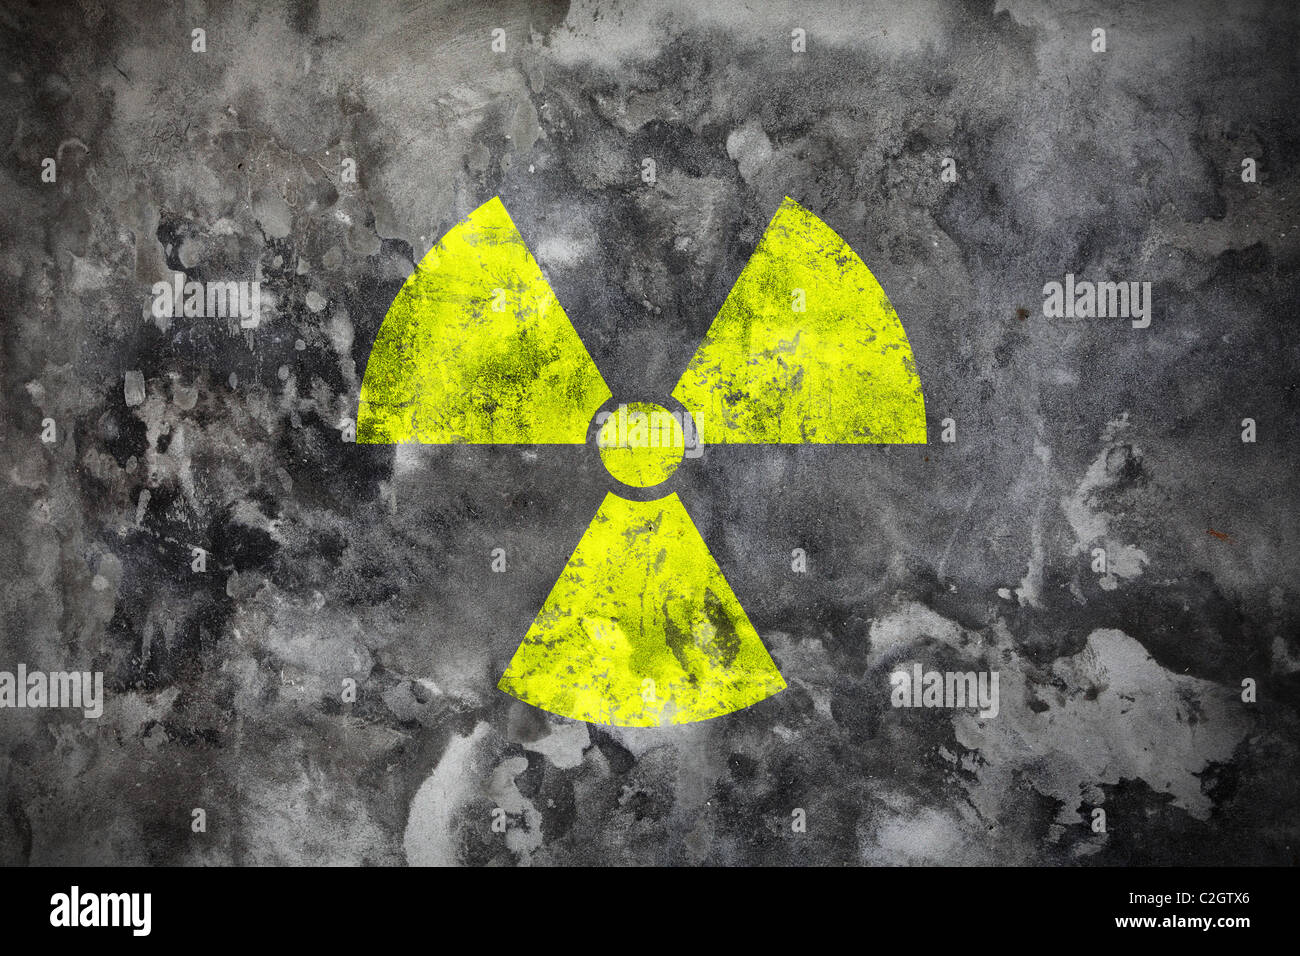 Concrete wall with yellow radiation sign - Stock Image